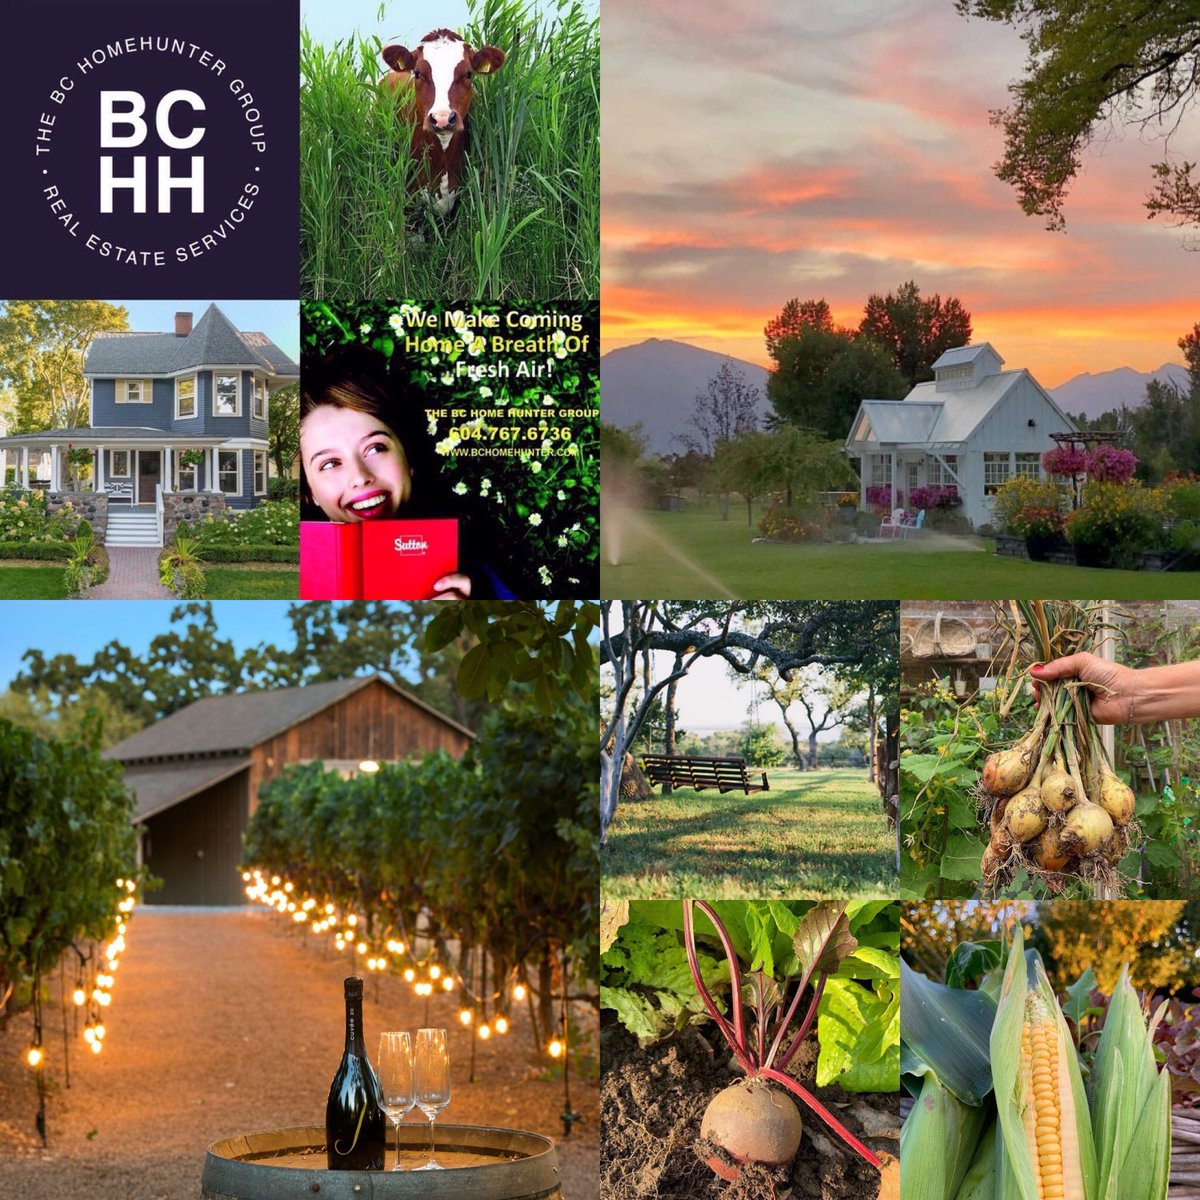 THE #BC HOME HUNTER GROUP Who else was presenting multiple offers for amazing & very happy new home owners late last night? #Vancouver #WestVan #NorthVan #Squamish #Whistler #WhiteRock #Langley #FraserValley #VancouverIsland #Okanagan #WestCoast #BCHomeHunter #BCHH #WeLoveBC https://t.co/ZhYZhc1idO